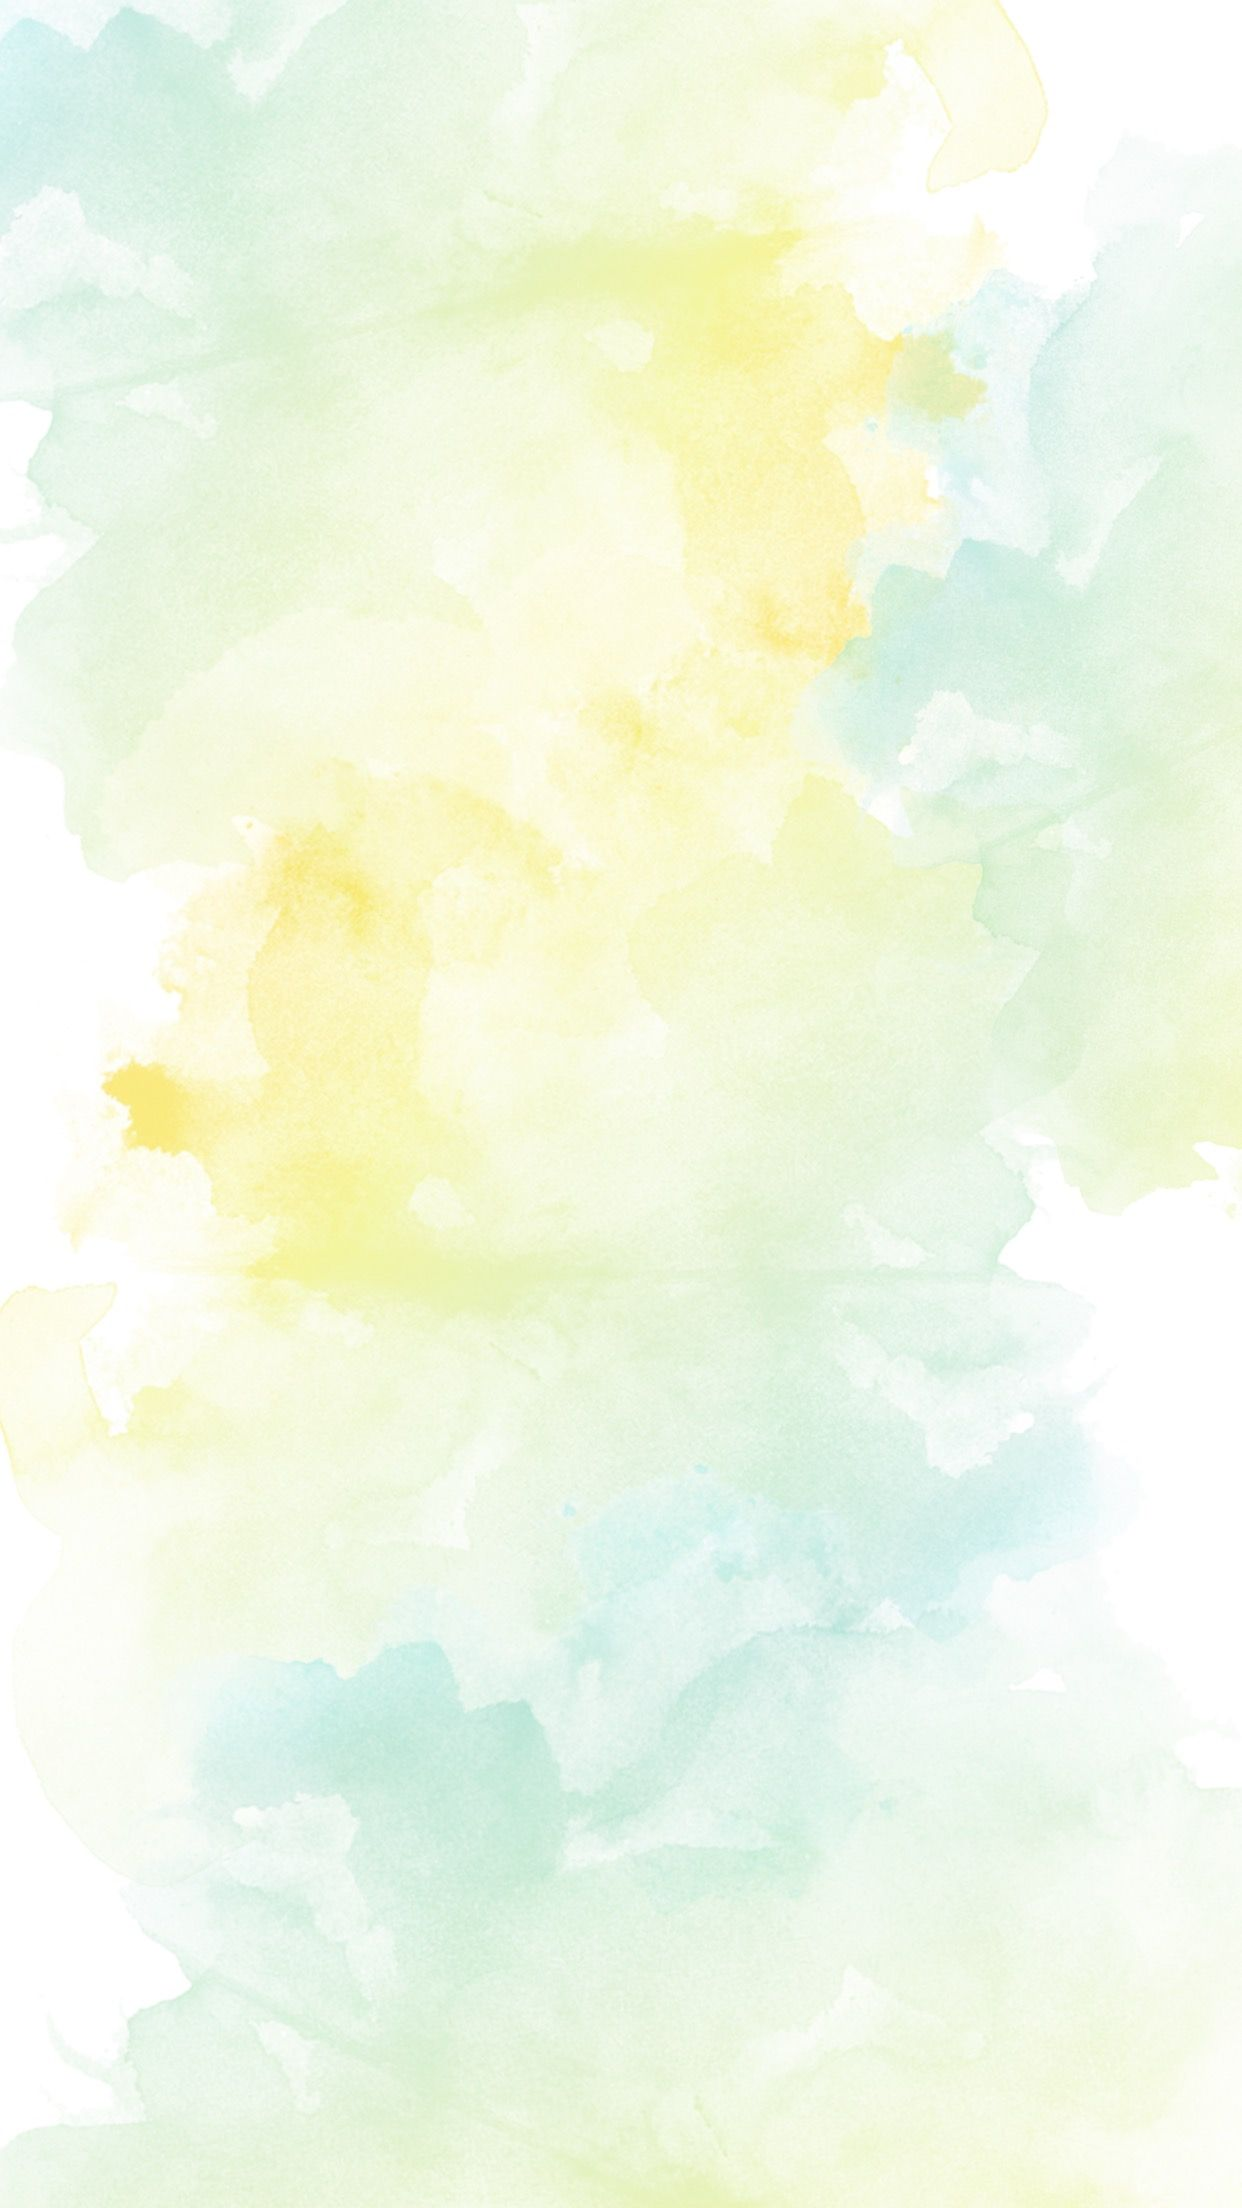 Watercolor Wallpaper Watercolor Wallpaper Phone Watercolor